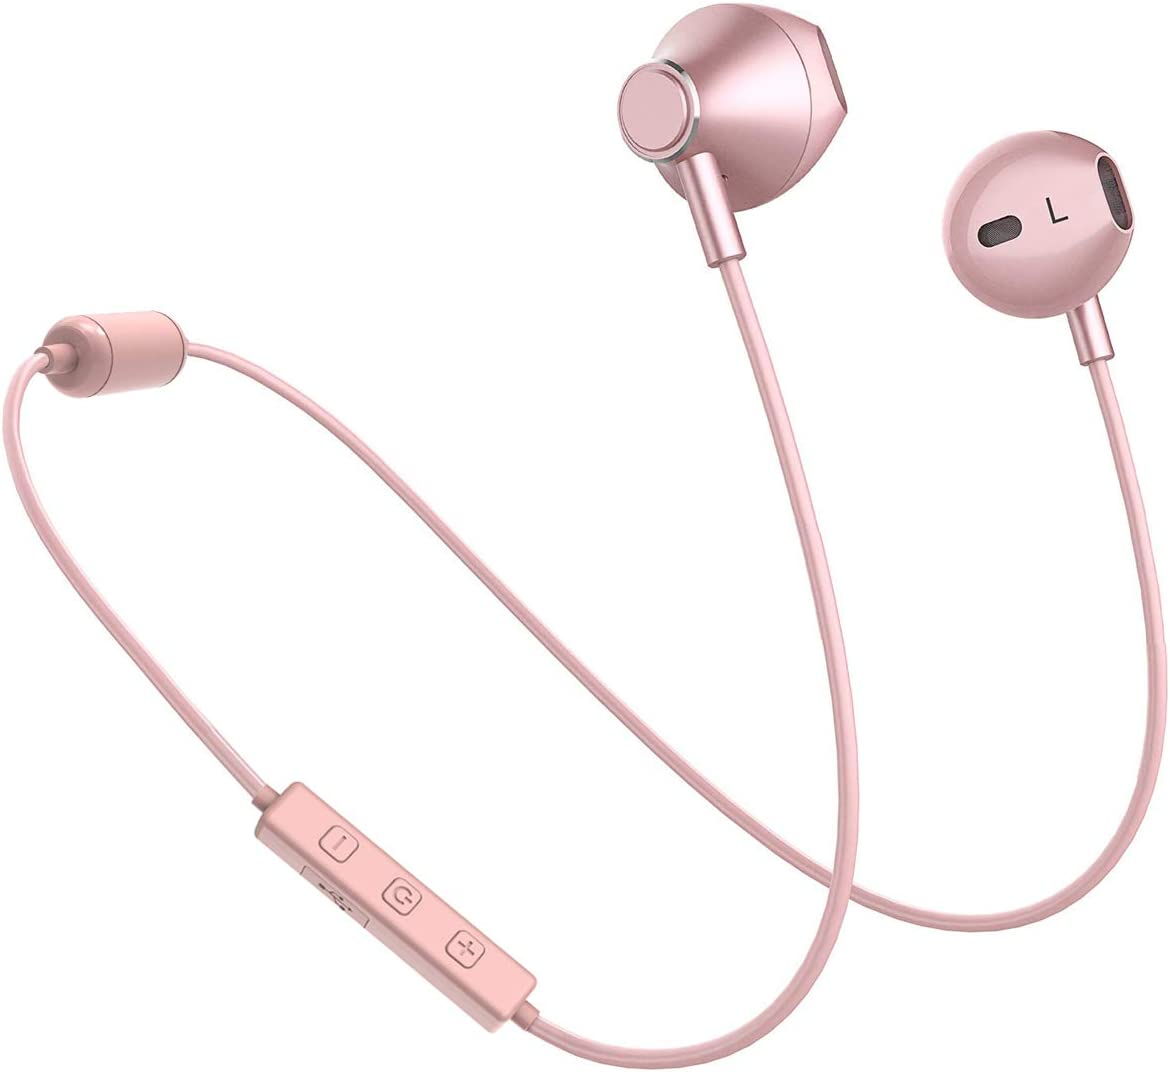 Amazon Com Bluetooth Headphones Yostyle Magnetic Wireless Earbuds Bluetooth 5 0 Noise Canceling Earphones Sweatproof Sport Headset W Mic For Iphone 11 Pro X Xr Xs Max 8 7 6 Plus 10 Hrs Work Time Rose Gold Home Audio Theater